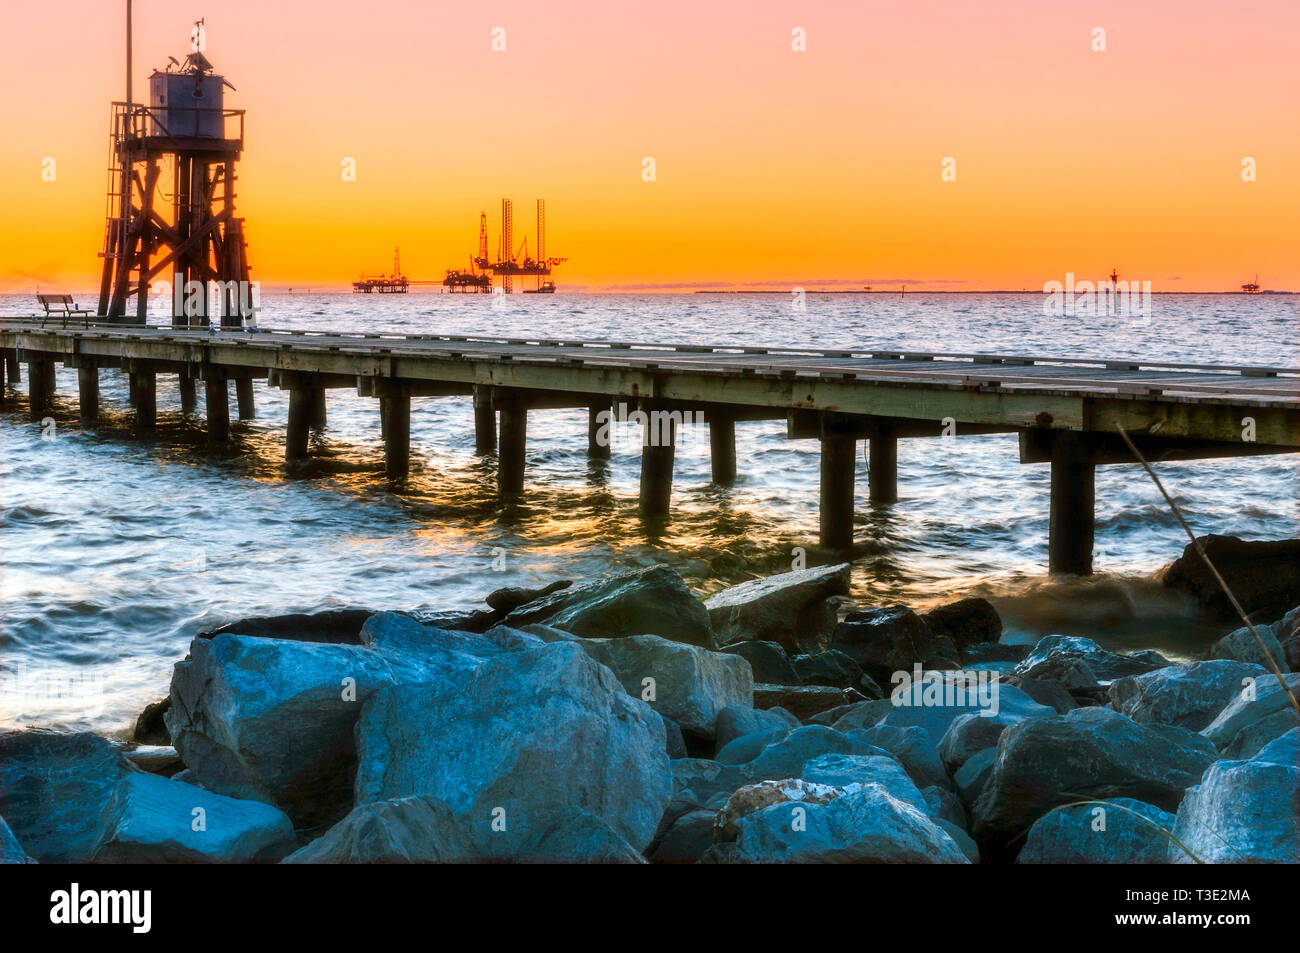 Data Buoy High Resolution Stock Photography And Images Alamy